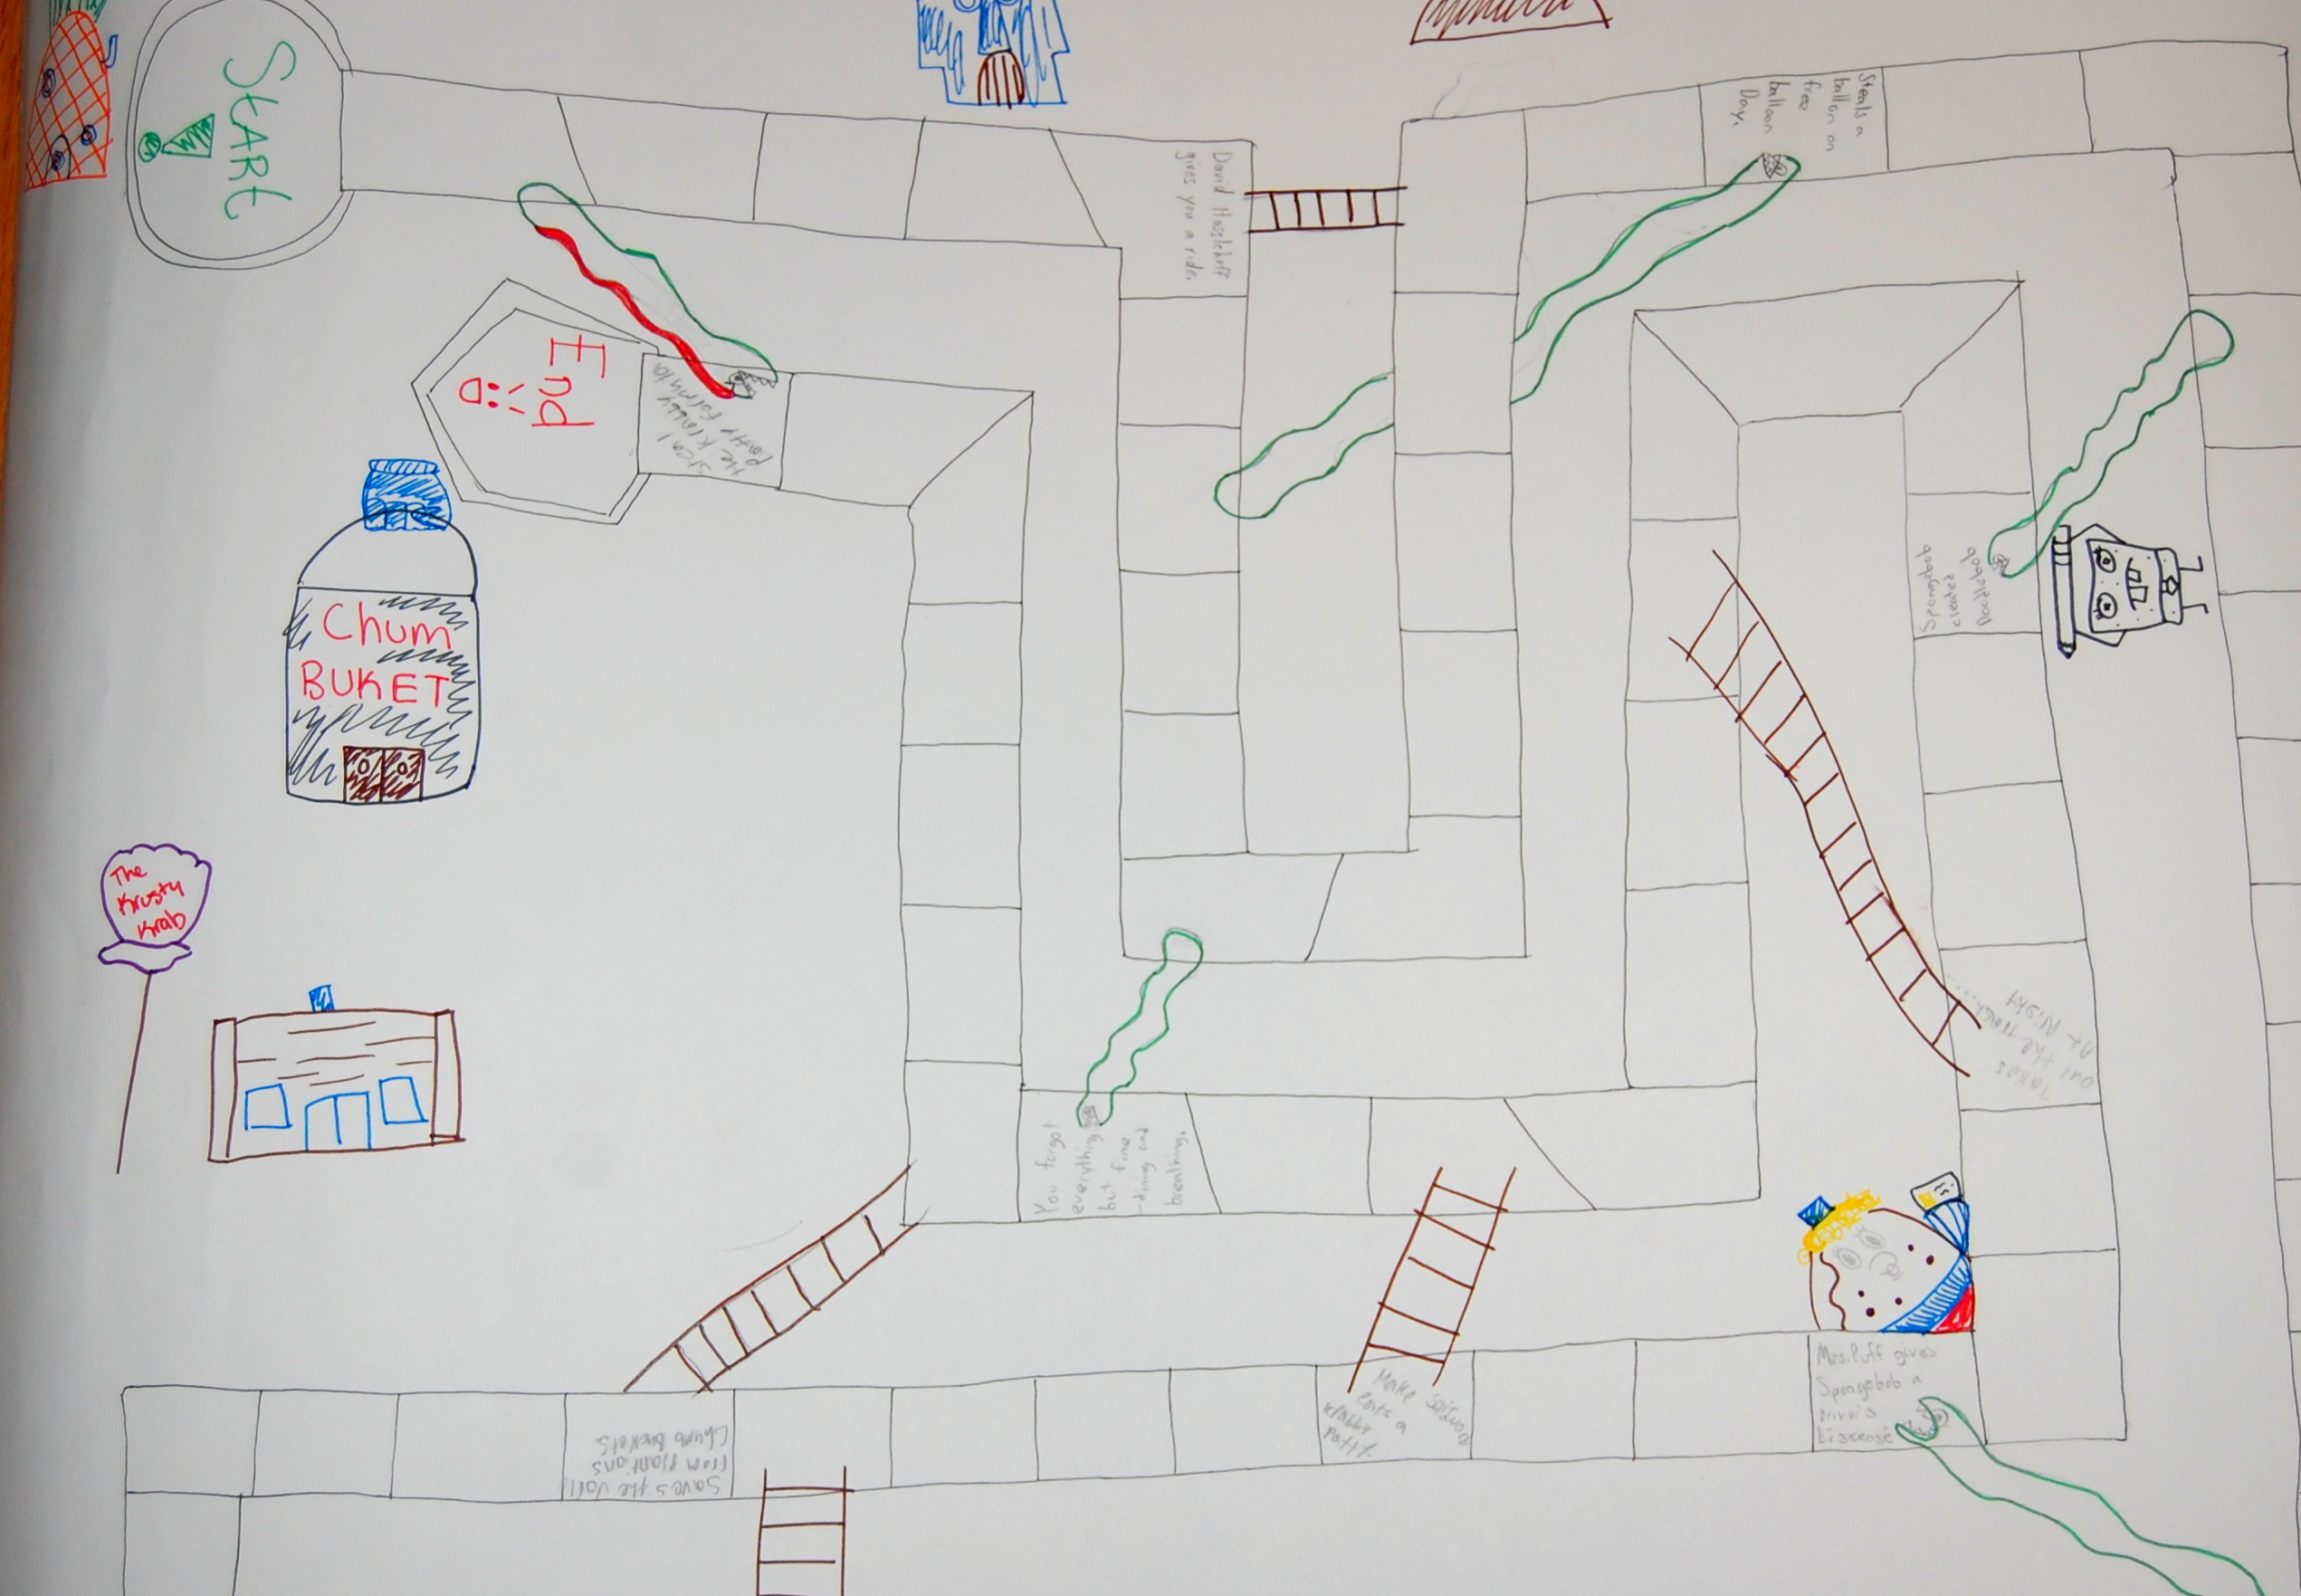 Tools for teachers do it yourself snakes ladders curioser and dsc2174 solutioingenieria Image collections